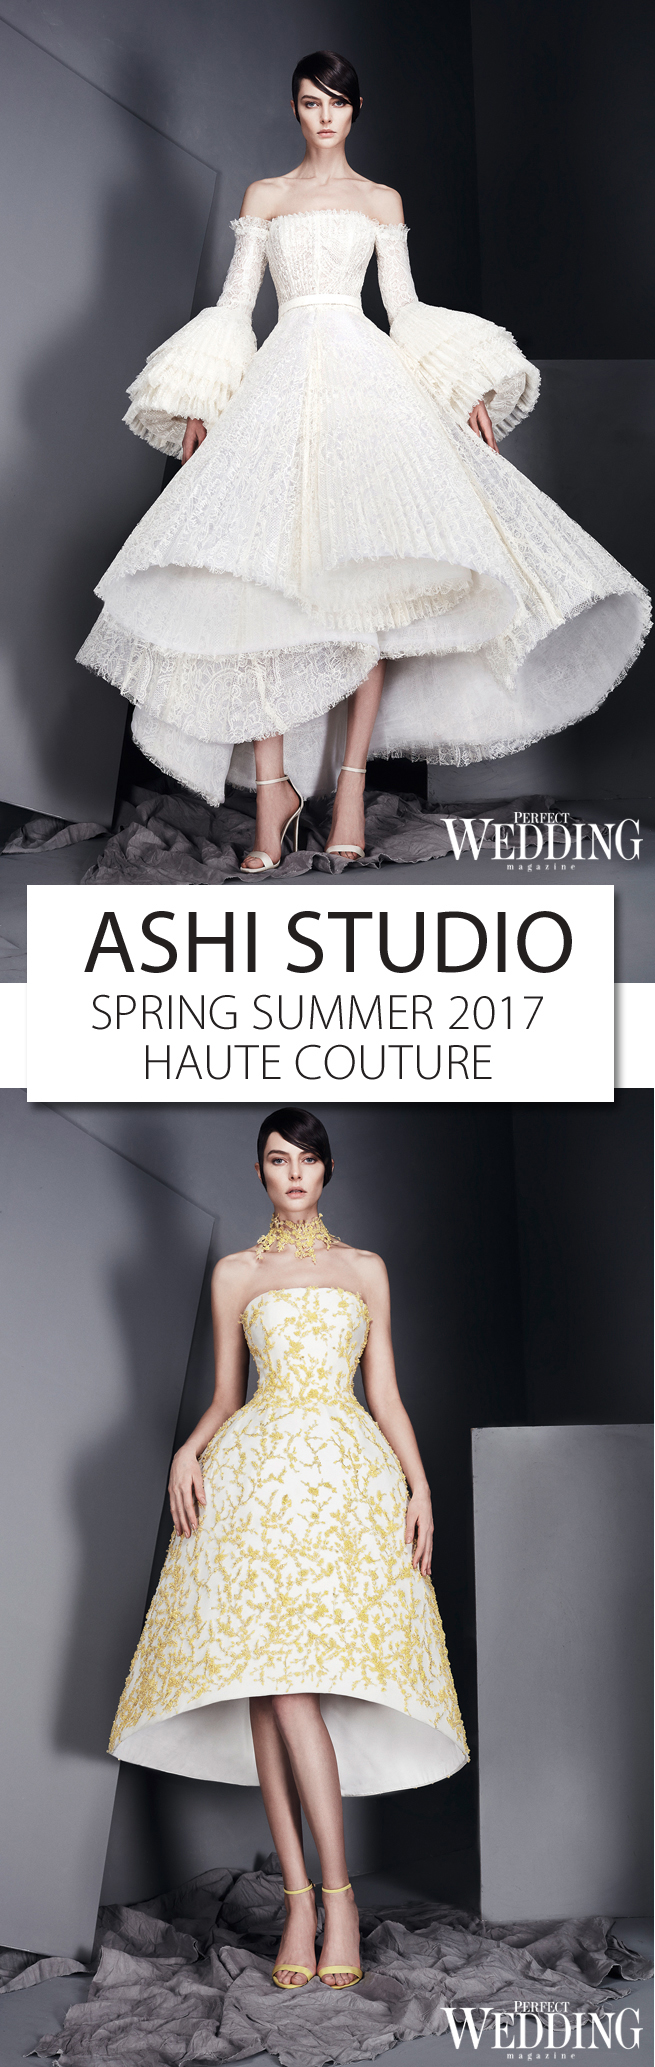 Ashi Studio, Whispers, Haute Couture, Spring Summer 2017, Bridal, Perfect Wedding Magazine, Perfect Wedding Blog, Bridal Trends 2017